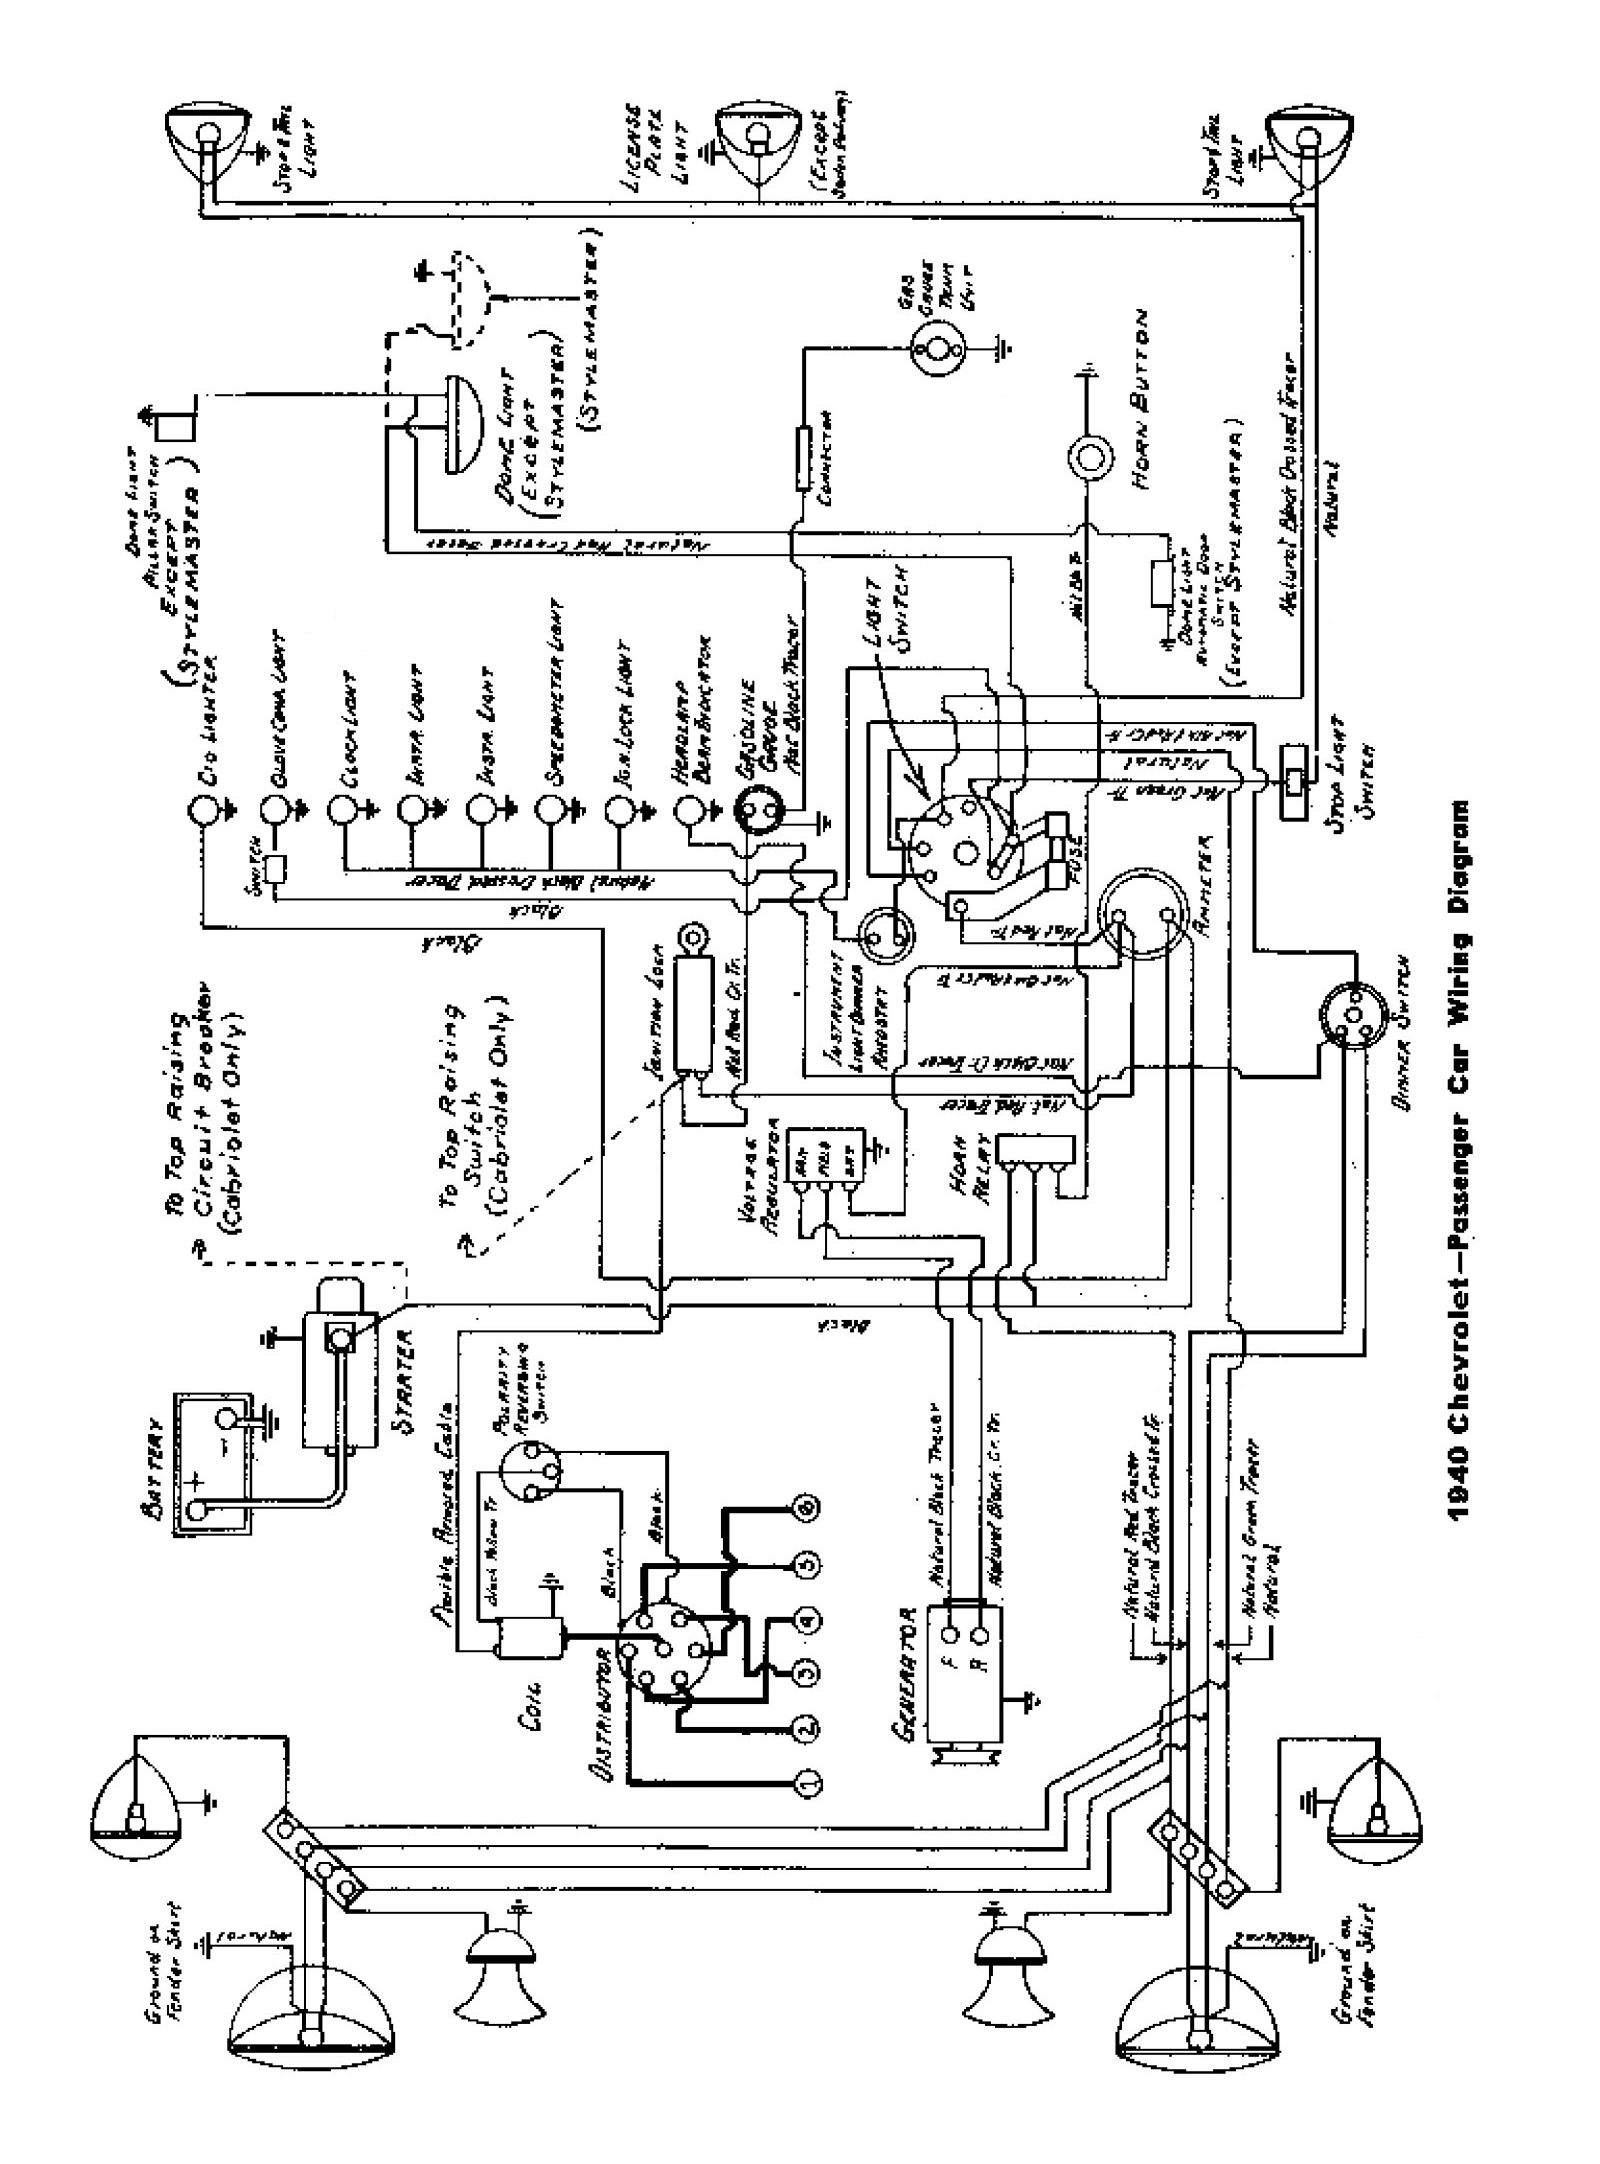 40car 1974 chevy truck wiring diagram 1974 chevrolet wiring diagram 1996 Ford Ranger Wiring Diagram at crackthecode.co